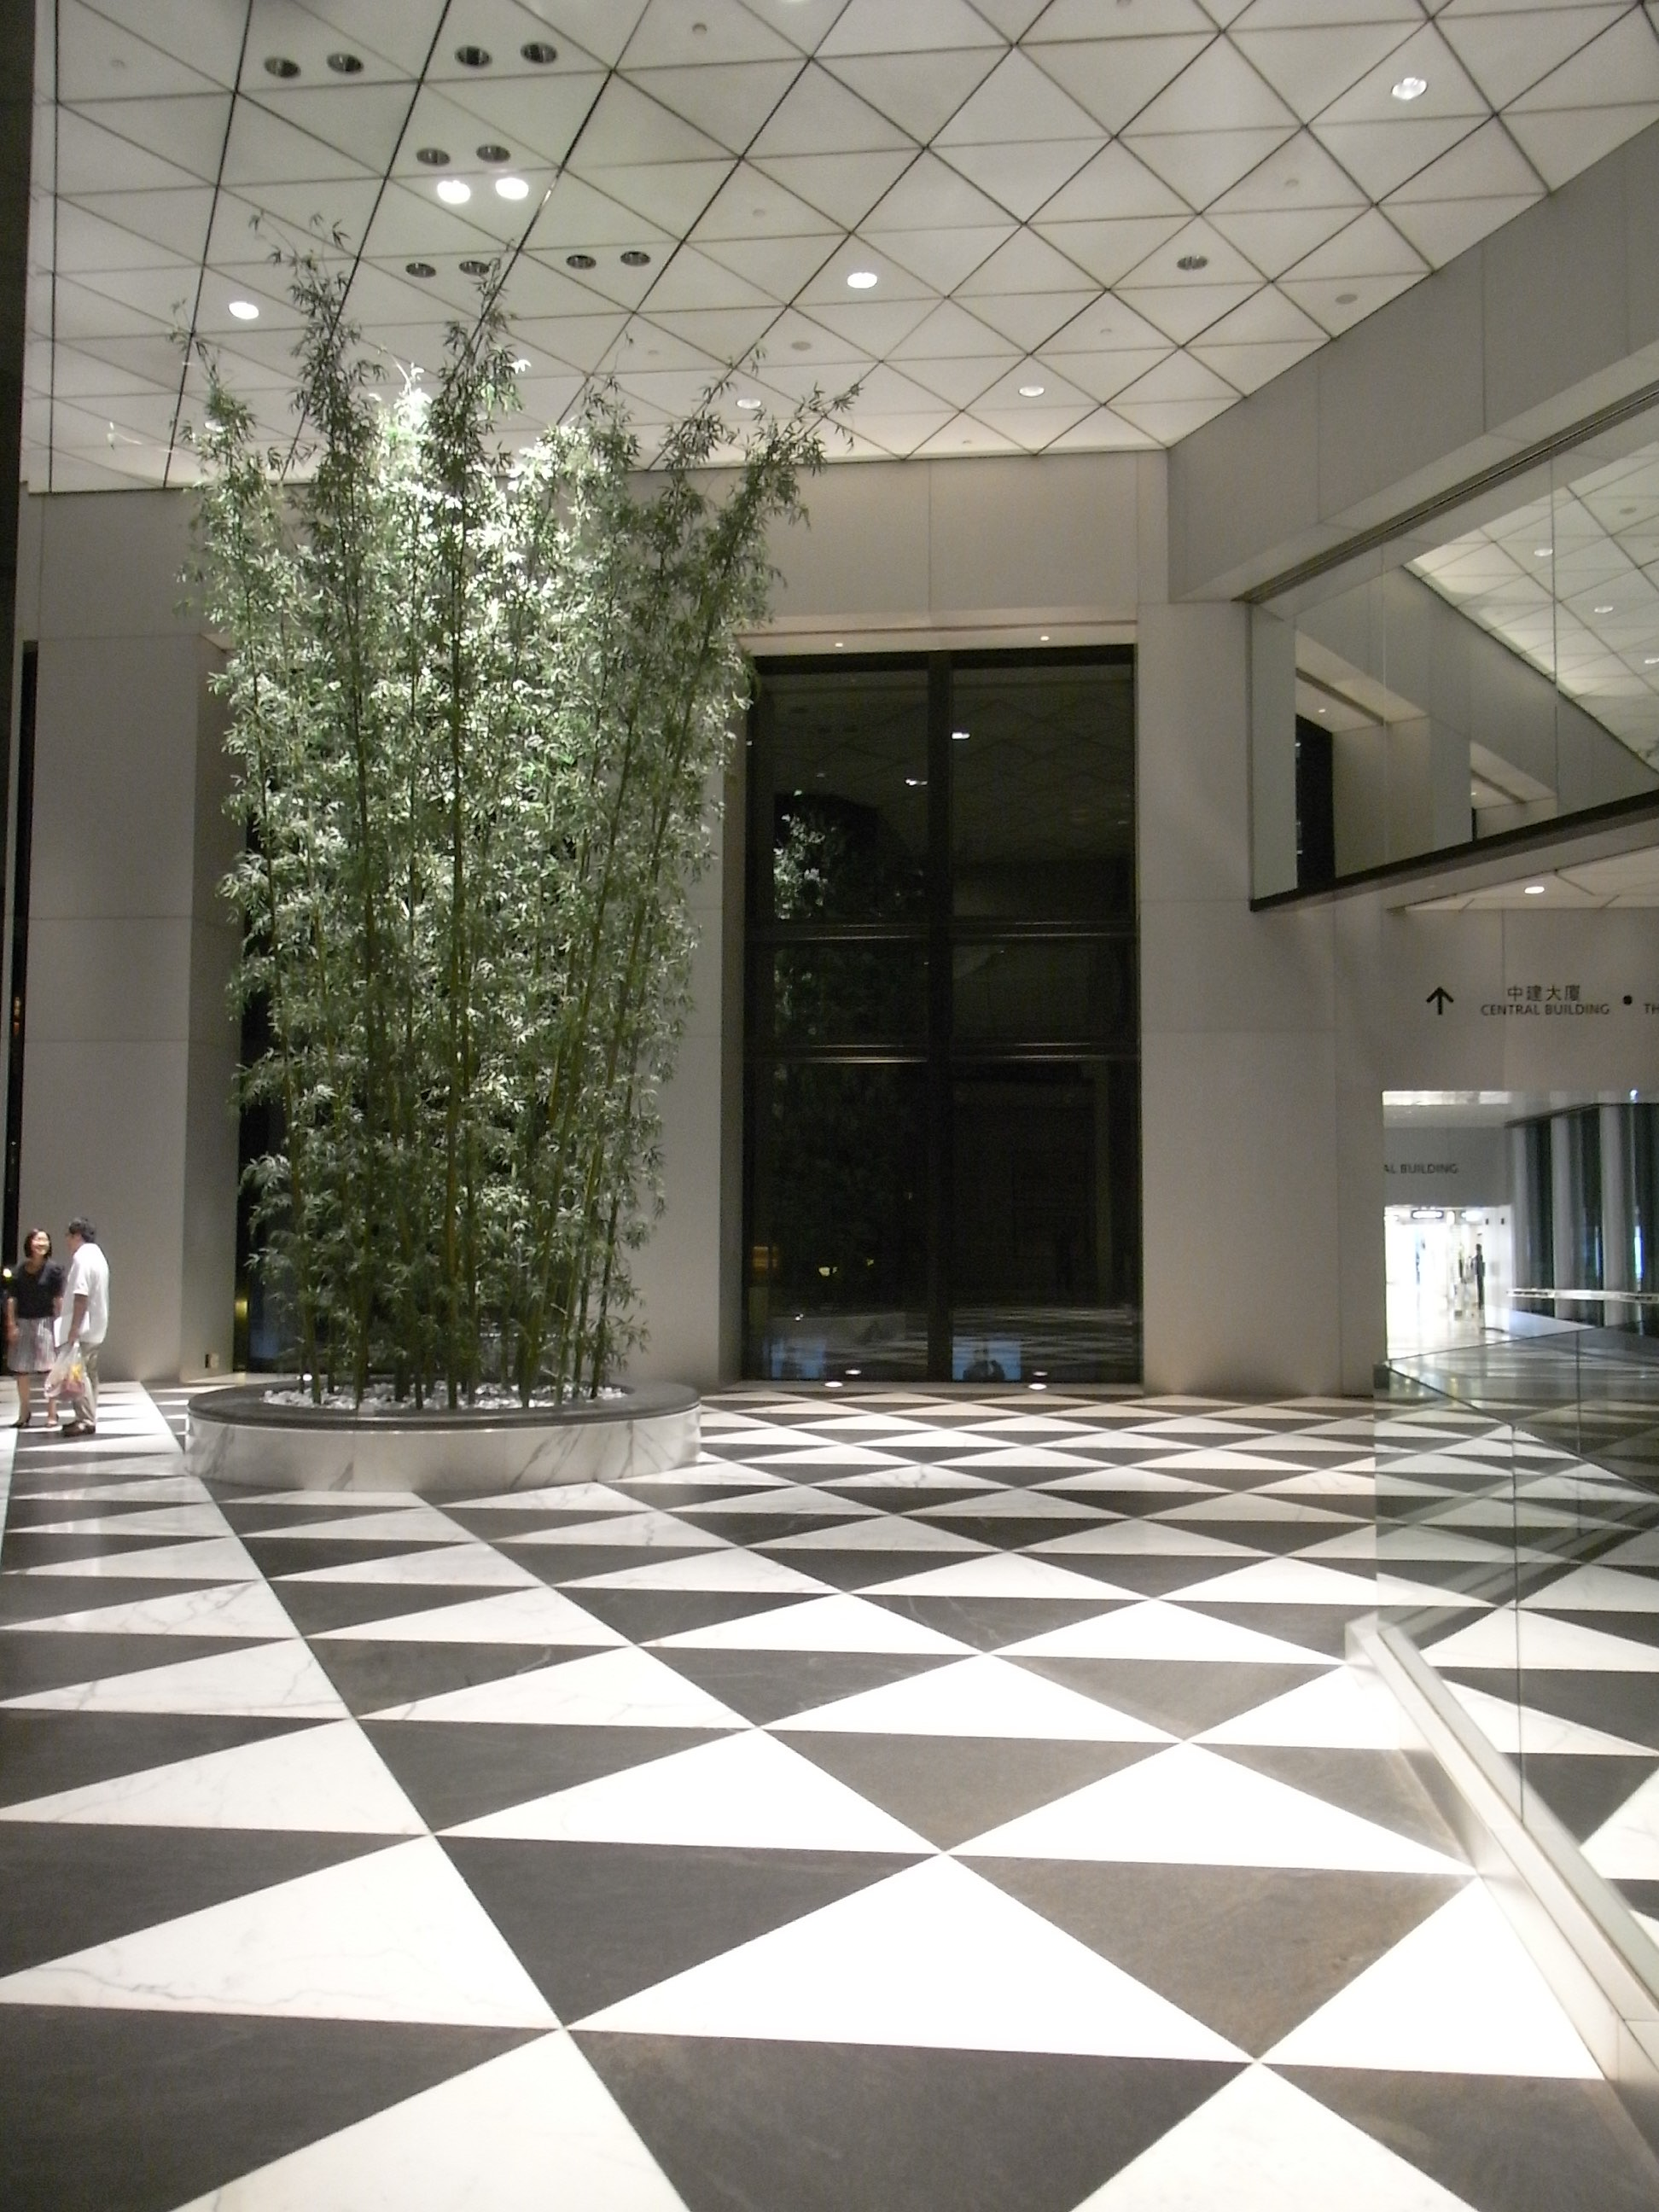 FileHK Central Night Tower Lift Lobby Hall Floor Tile Pattern Aug 2010JPG